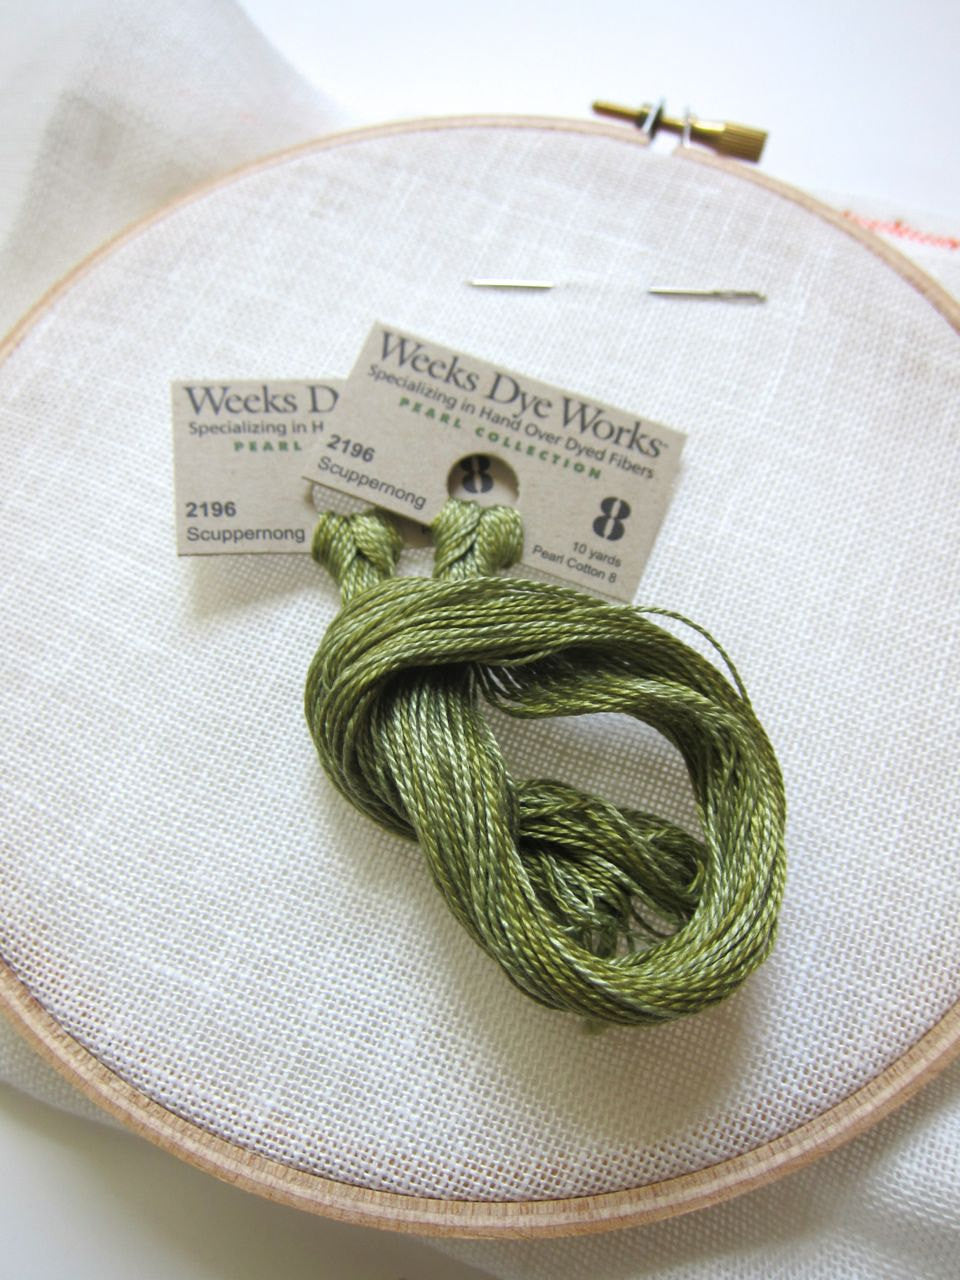 Pearl Cotton Thread - Weeks Dye Works Scuppernong (2196) Size 8 Perle Cotton - Snuggly Monkey